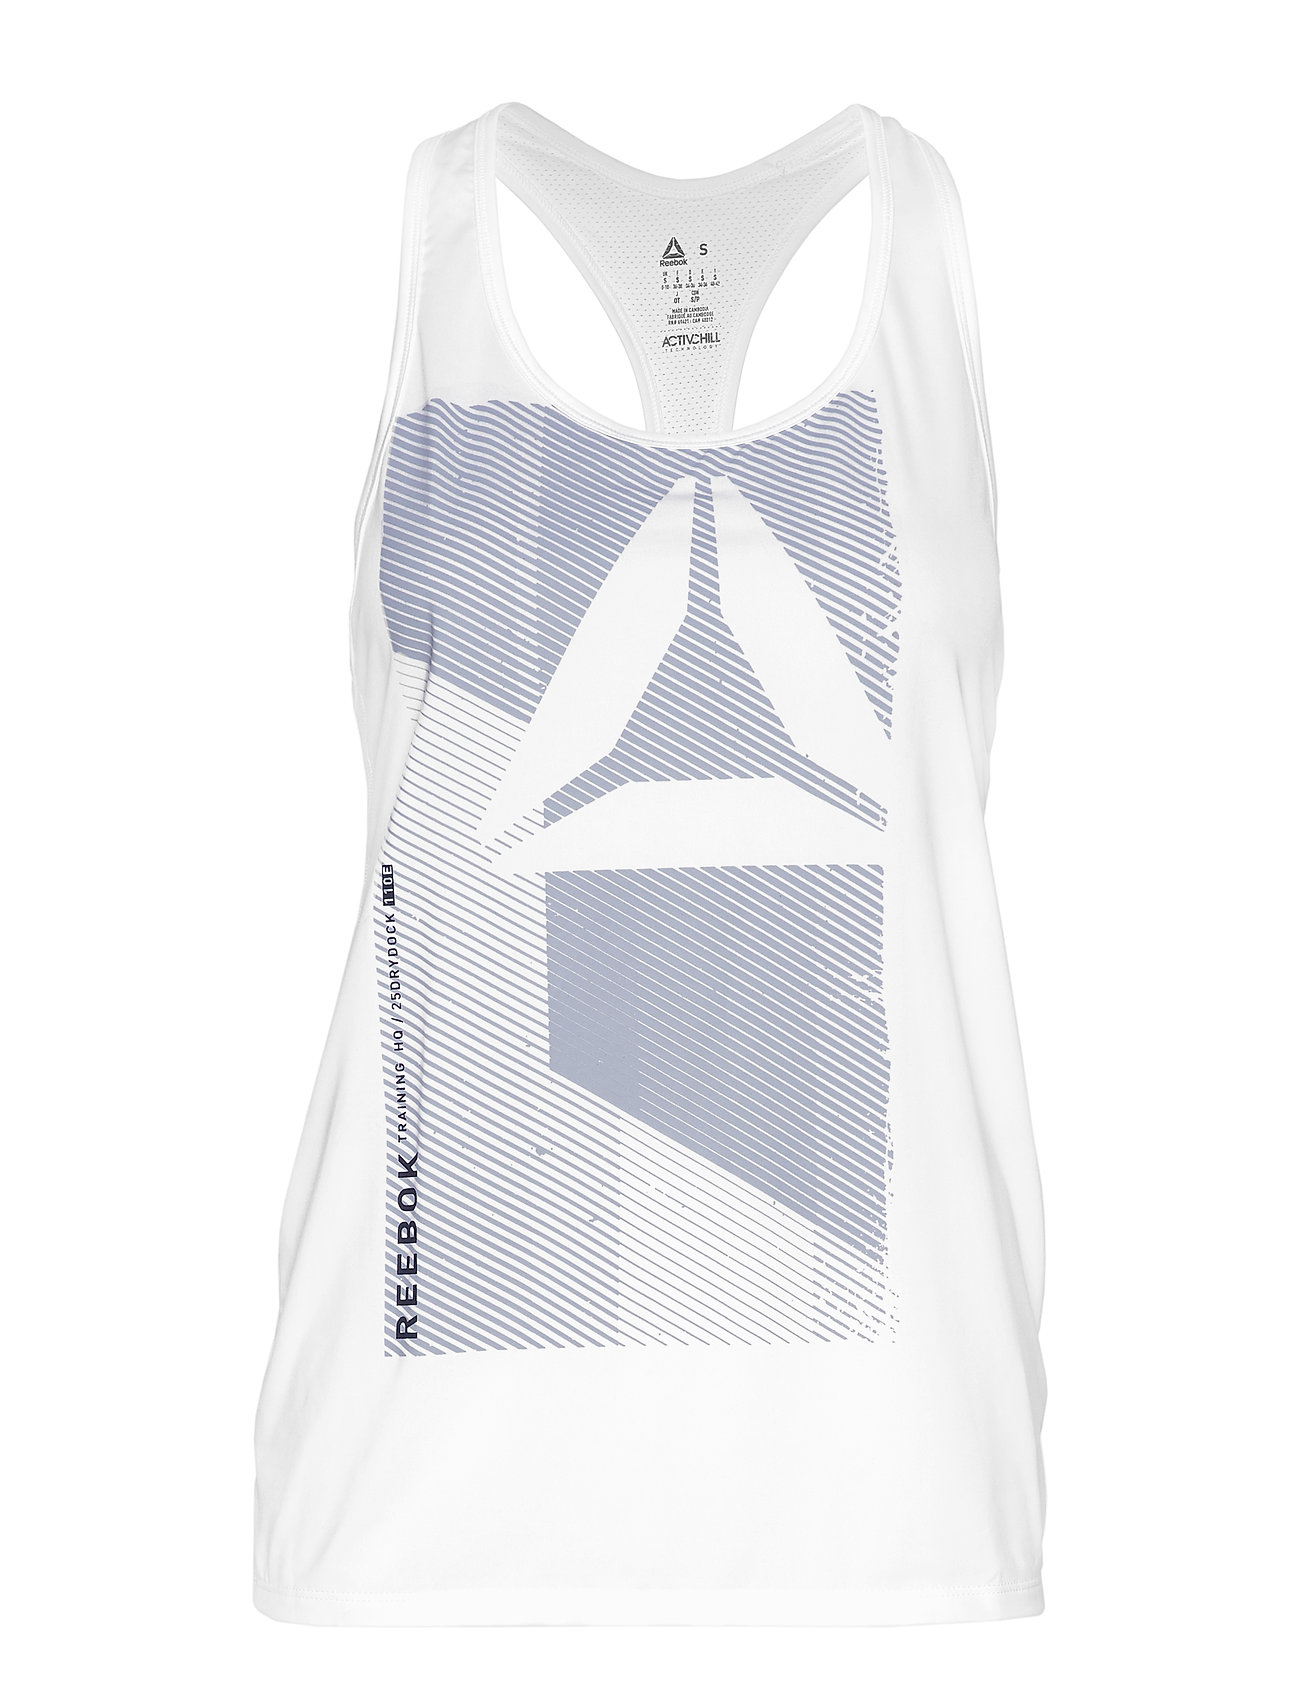 Reebok Performance OST AC GRAPHIC TANK - WHITE